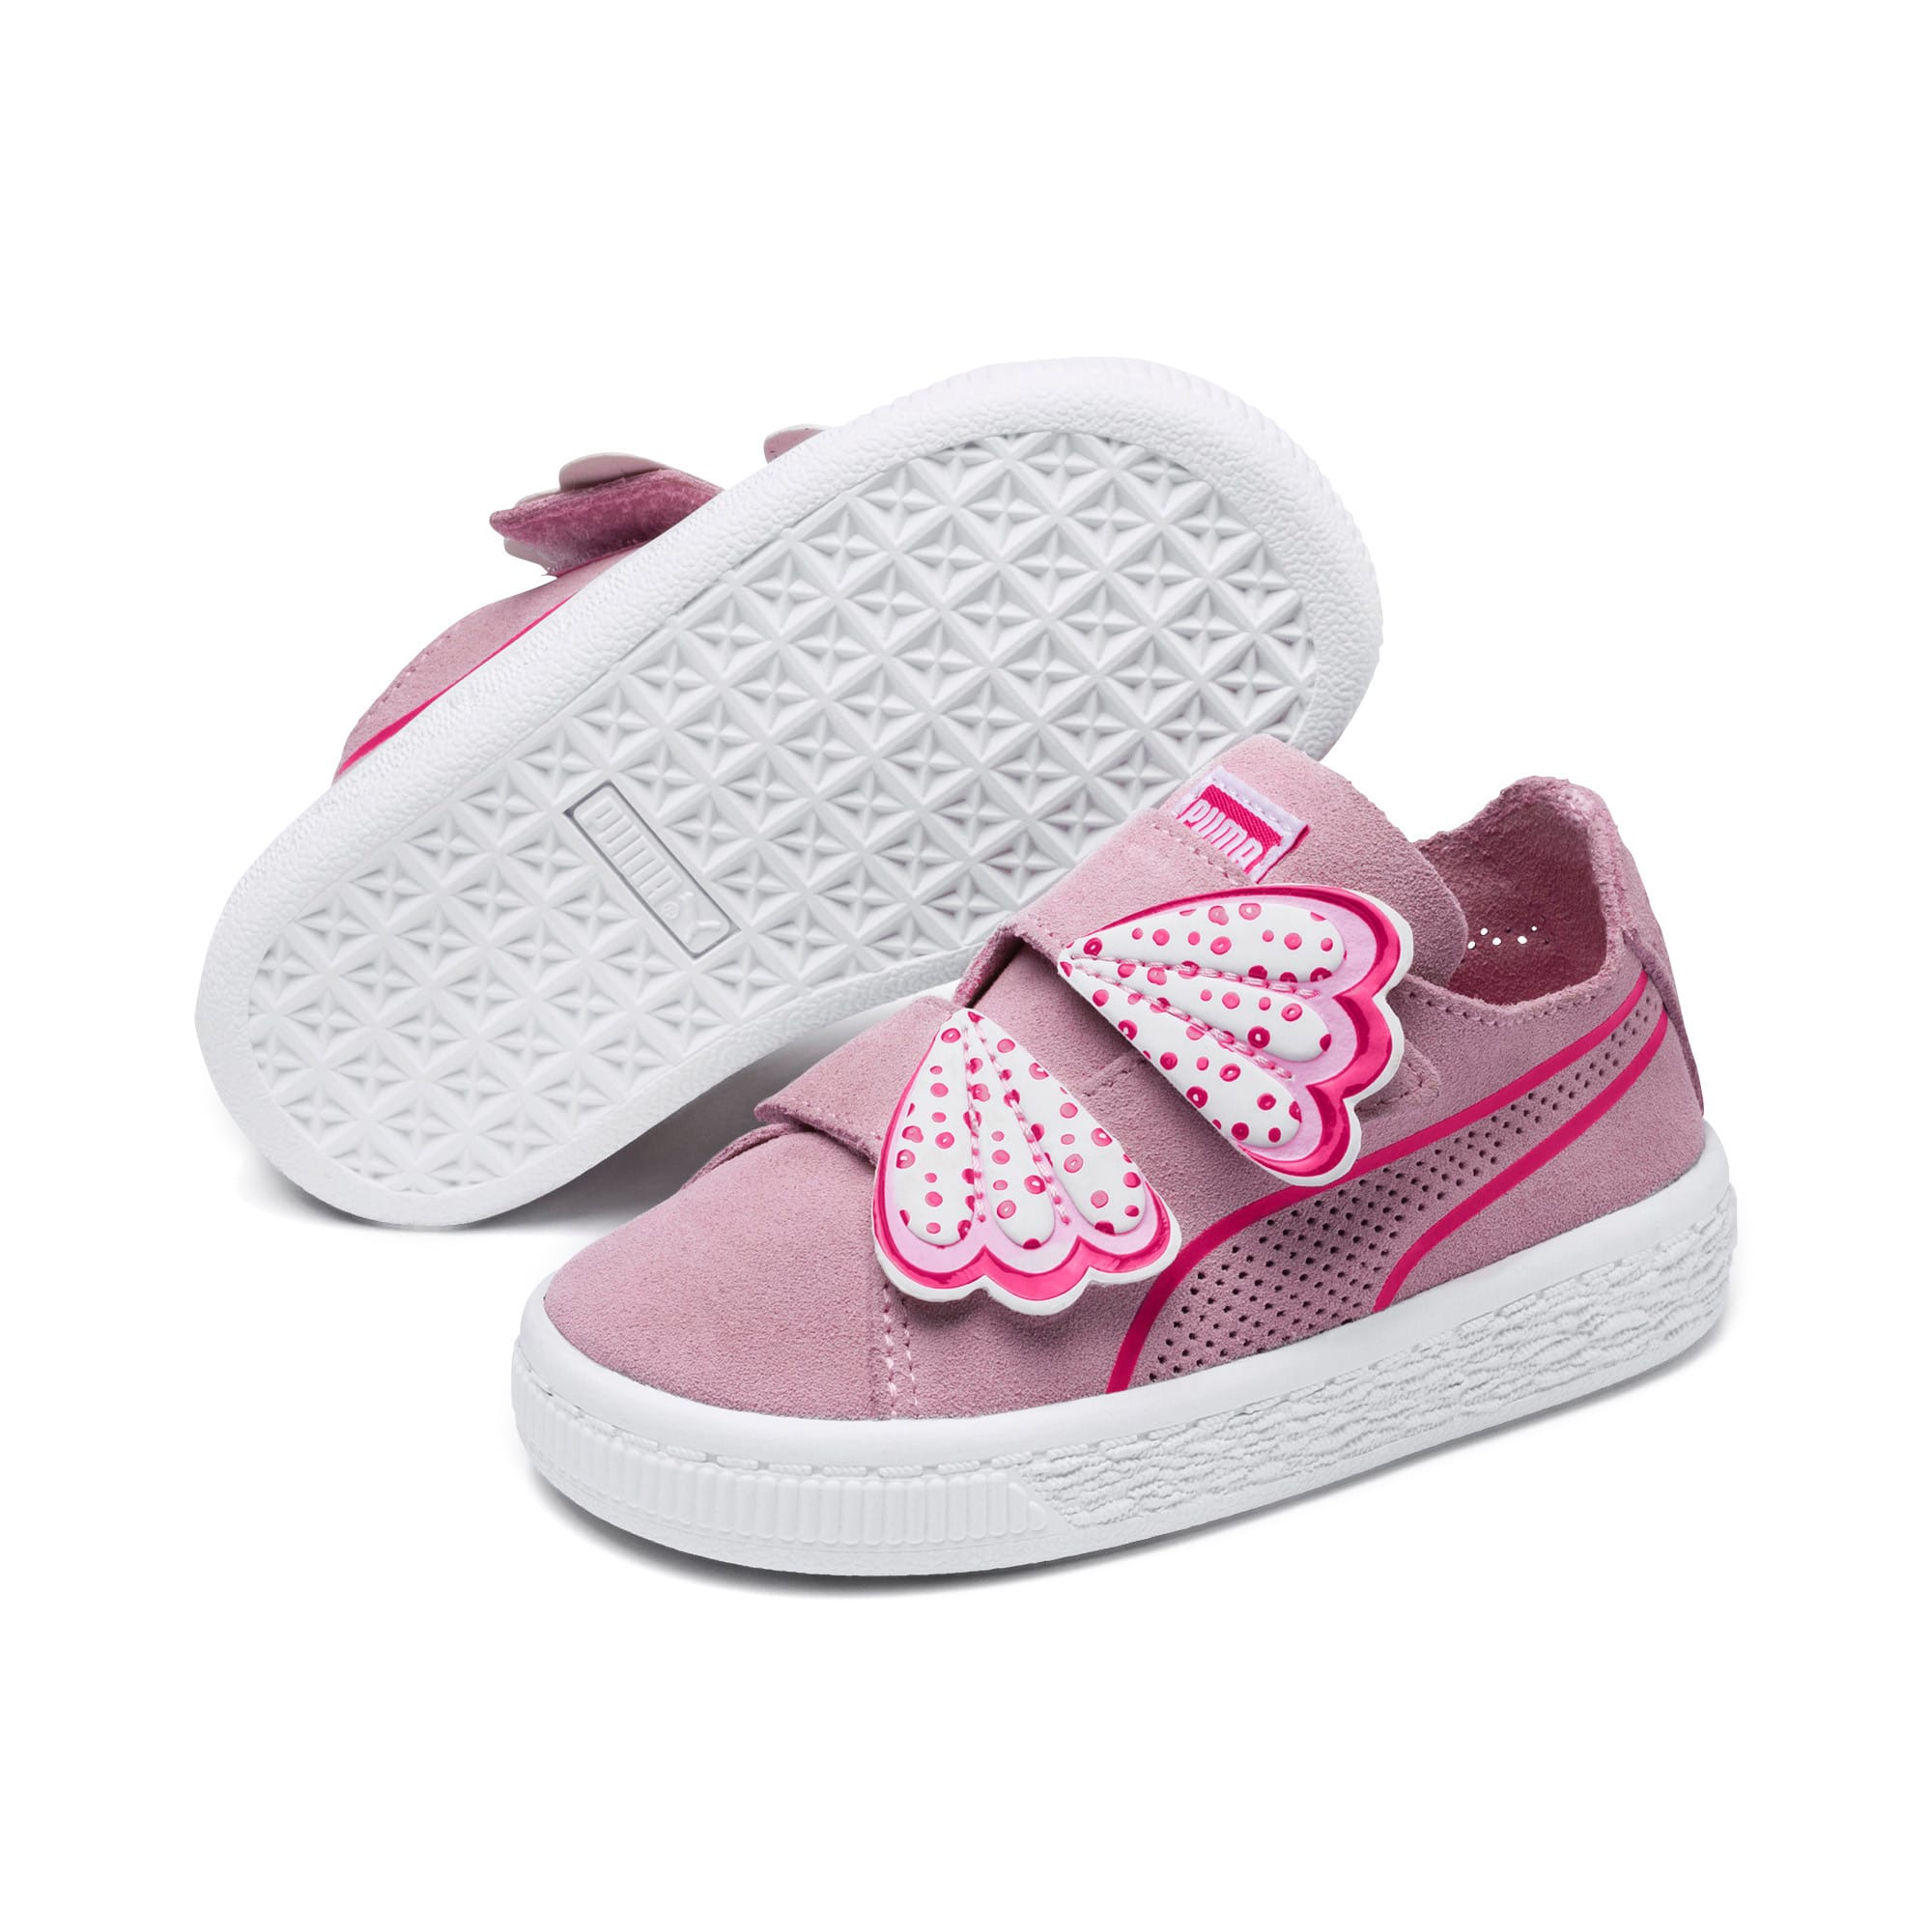 Thumbnail 2 of Suede Deconstruct Butterfly Toddler Shoes, Pale Pink-Fuchsia Purple, medium